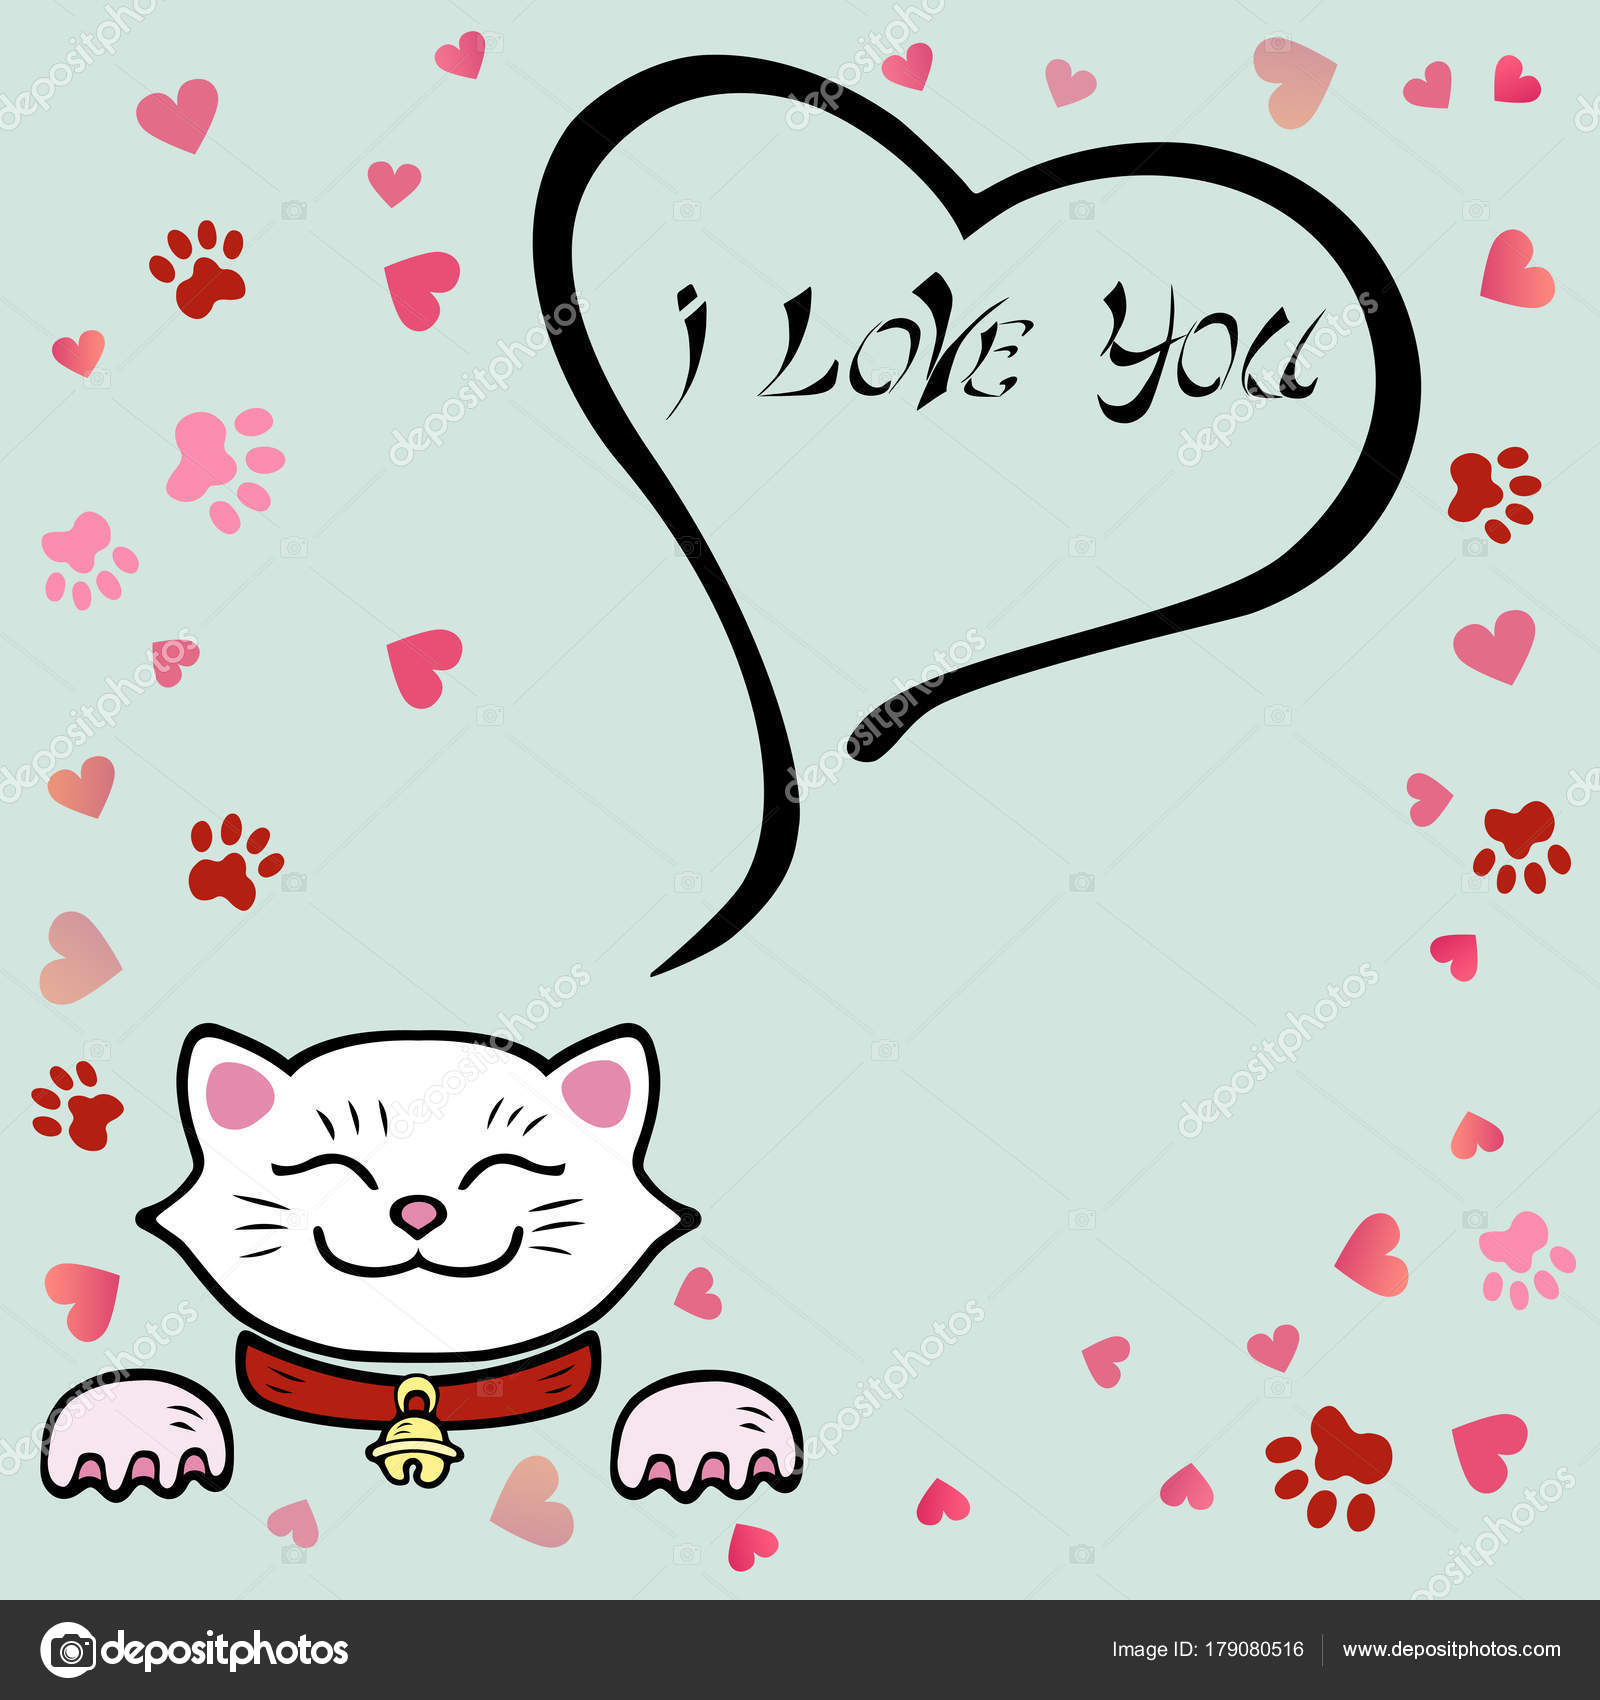 Cute love you card white cat template valentine day invitation cute i love you card with white cat template for st valentines dayinvitationpartymother daybirthdaybaby birthgreetings card m4hsunfo